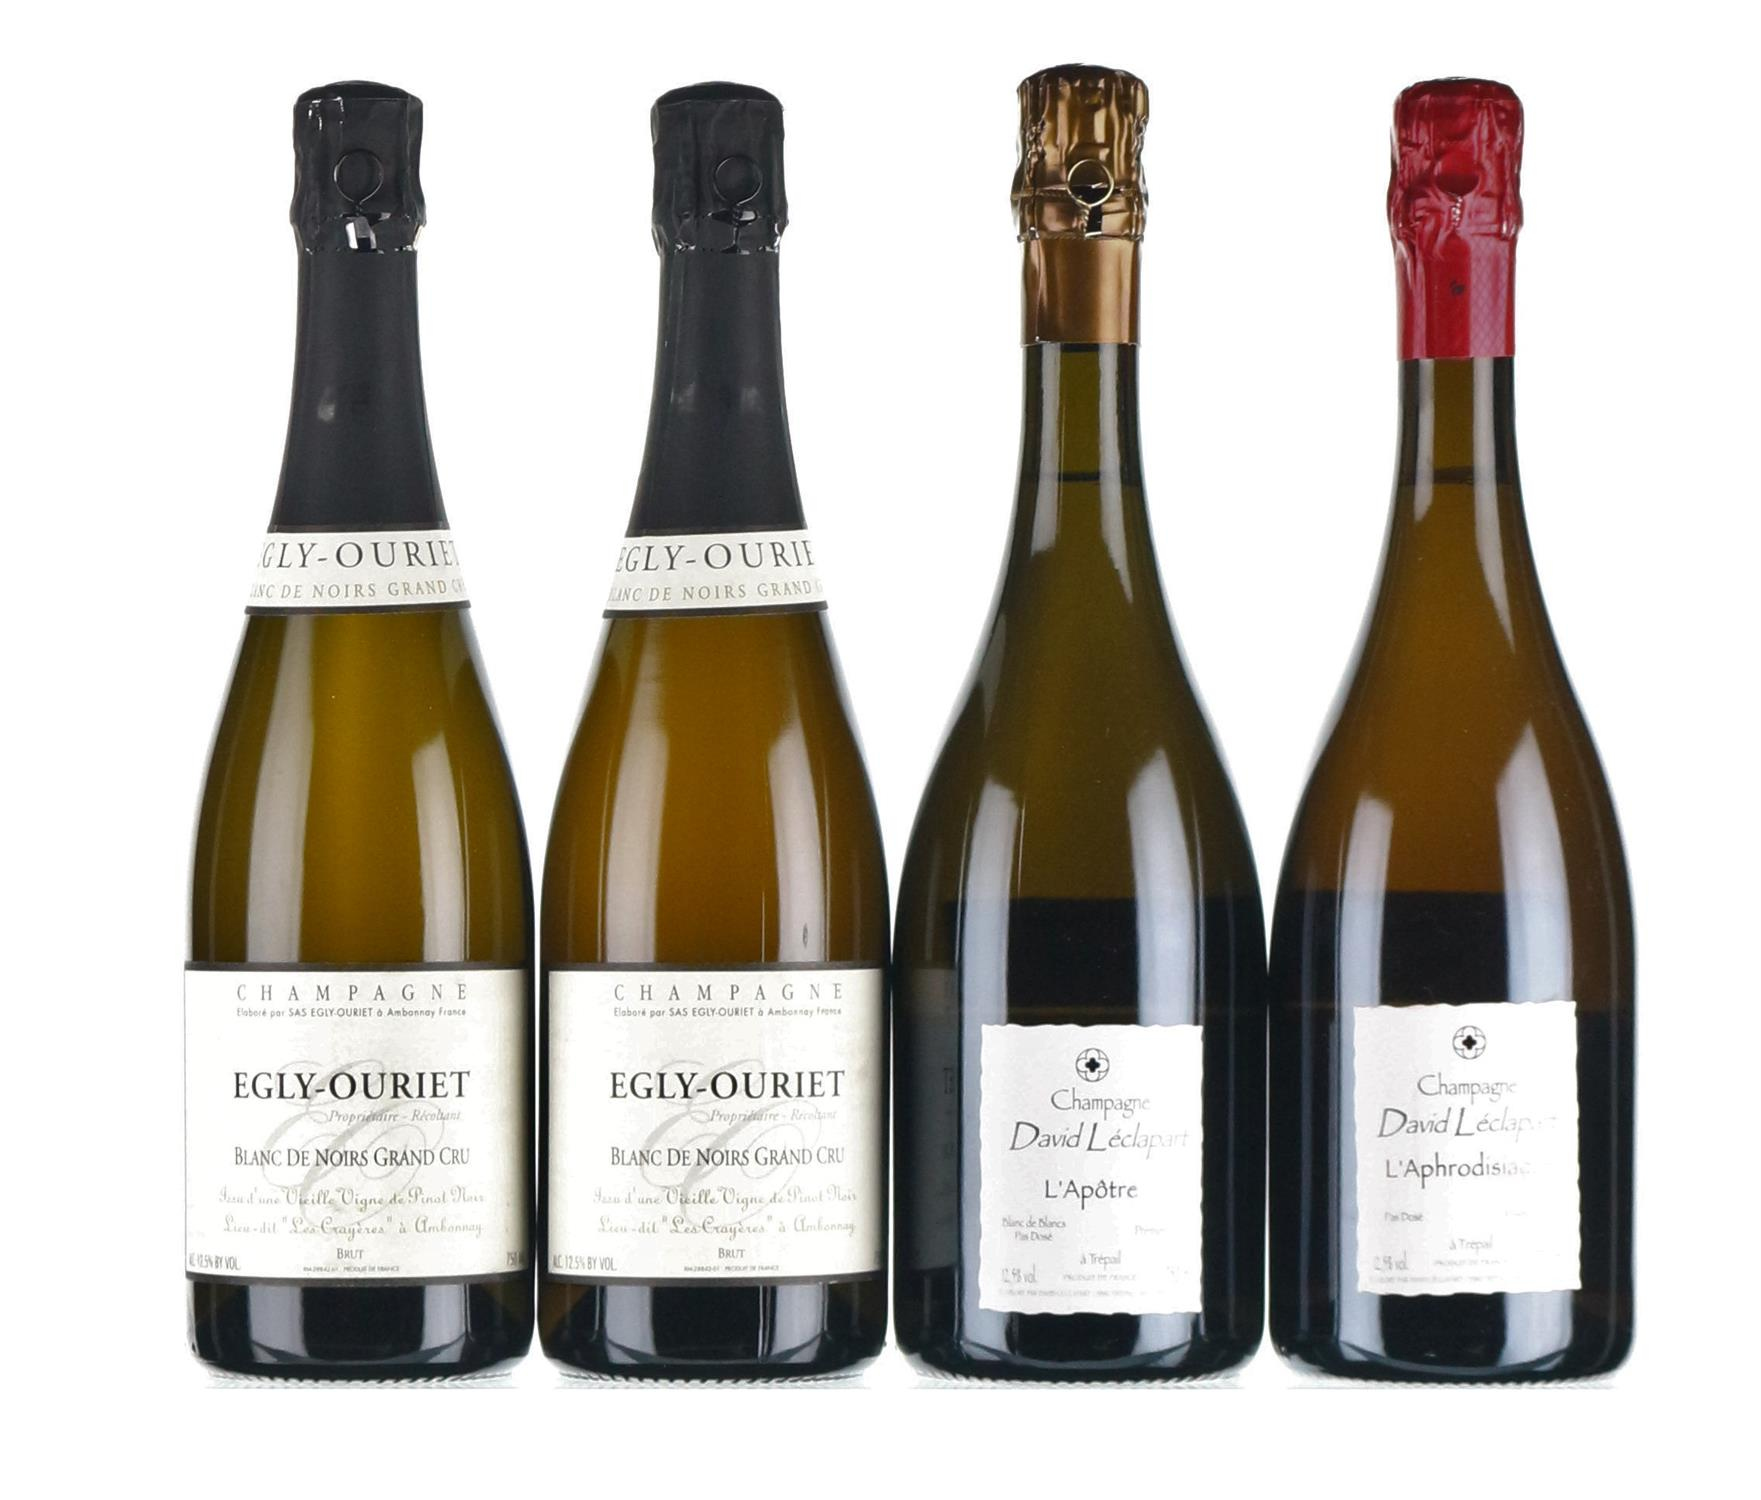 Mixed Champagne - Egly-Ouriet & David Leclapart